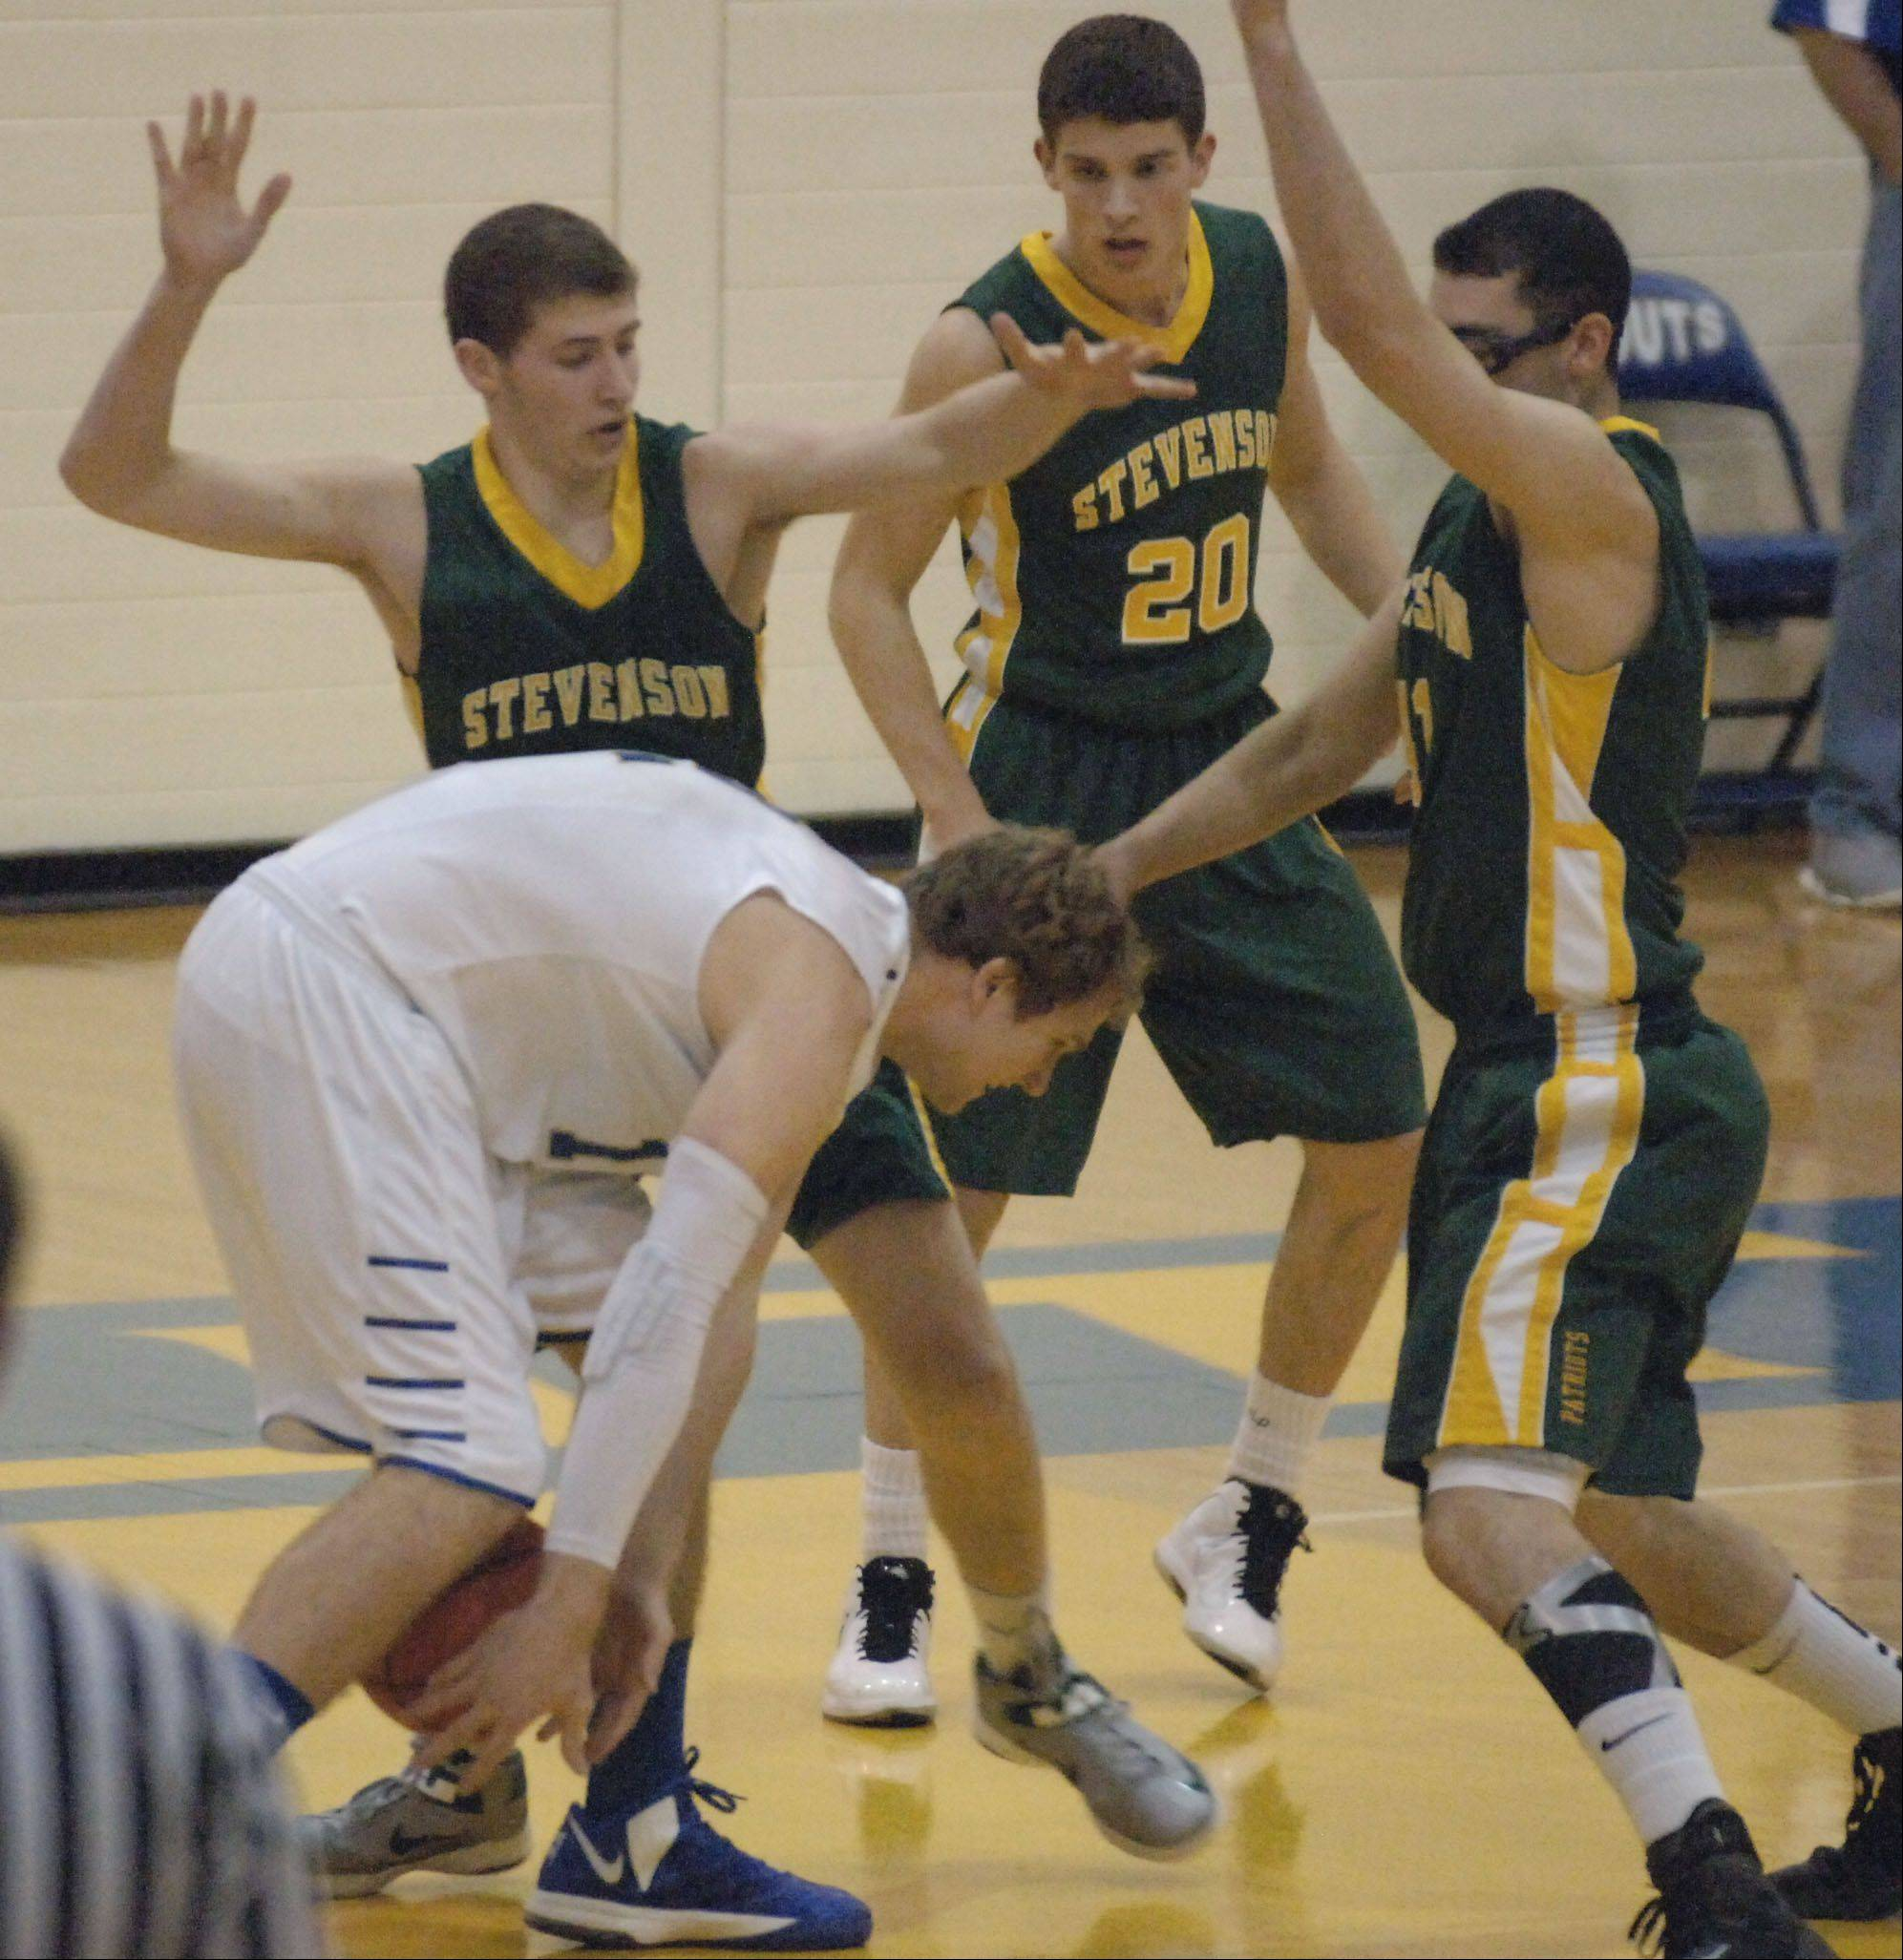 Brunson, Stevenson power past Lake Forest